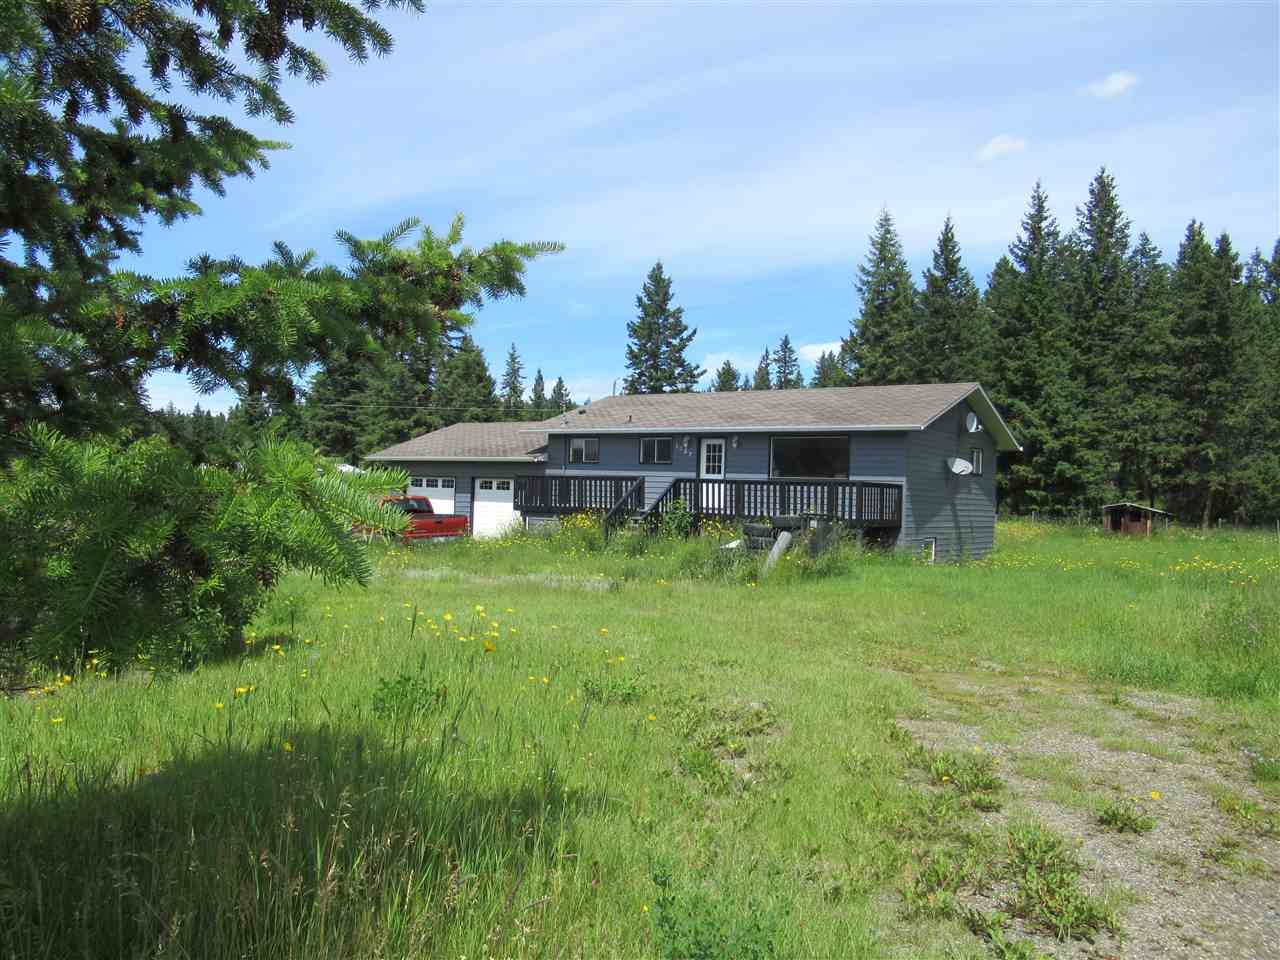 Photo 5: Photos: 3257 HINSCHE Road in Williams Lake: Williams Lake - Rural East House for sale (Williams Lake (Zone 27))  : MLS®# R2477340